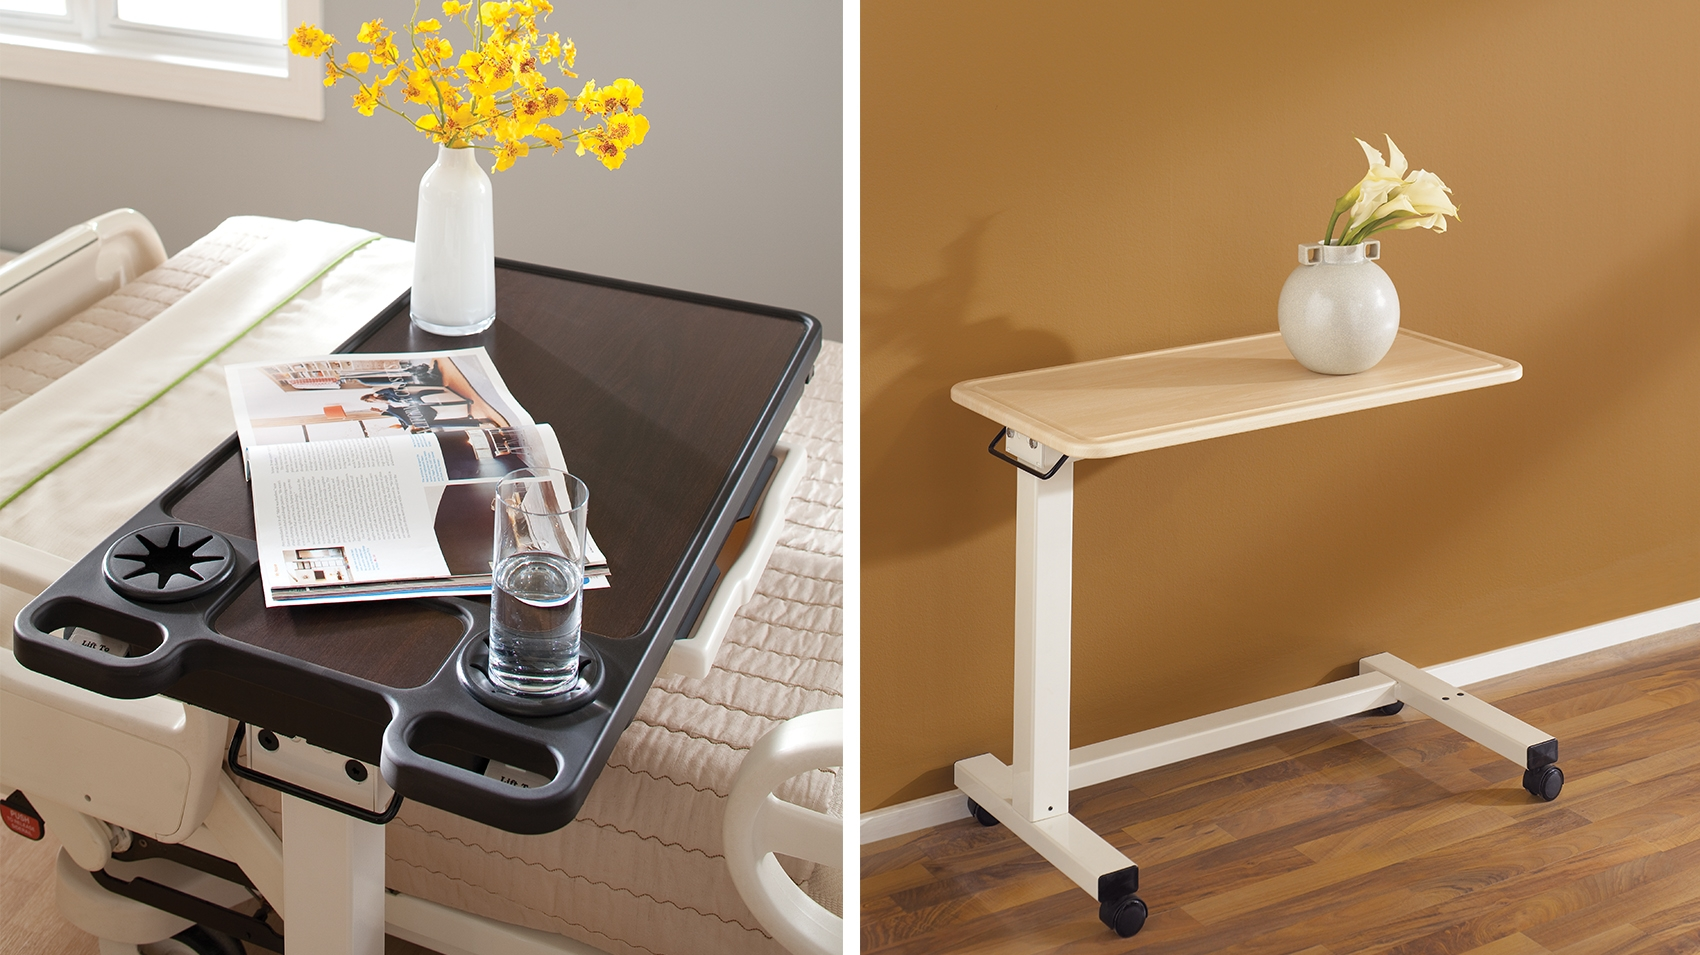 featuring a classic and simple design overbed table is a perfect solution for any patient area with two different styles featuring multiple